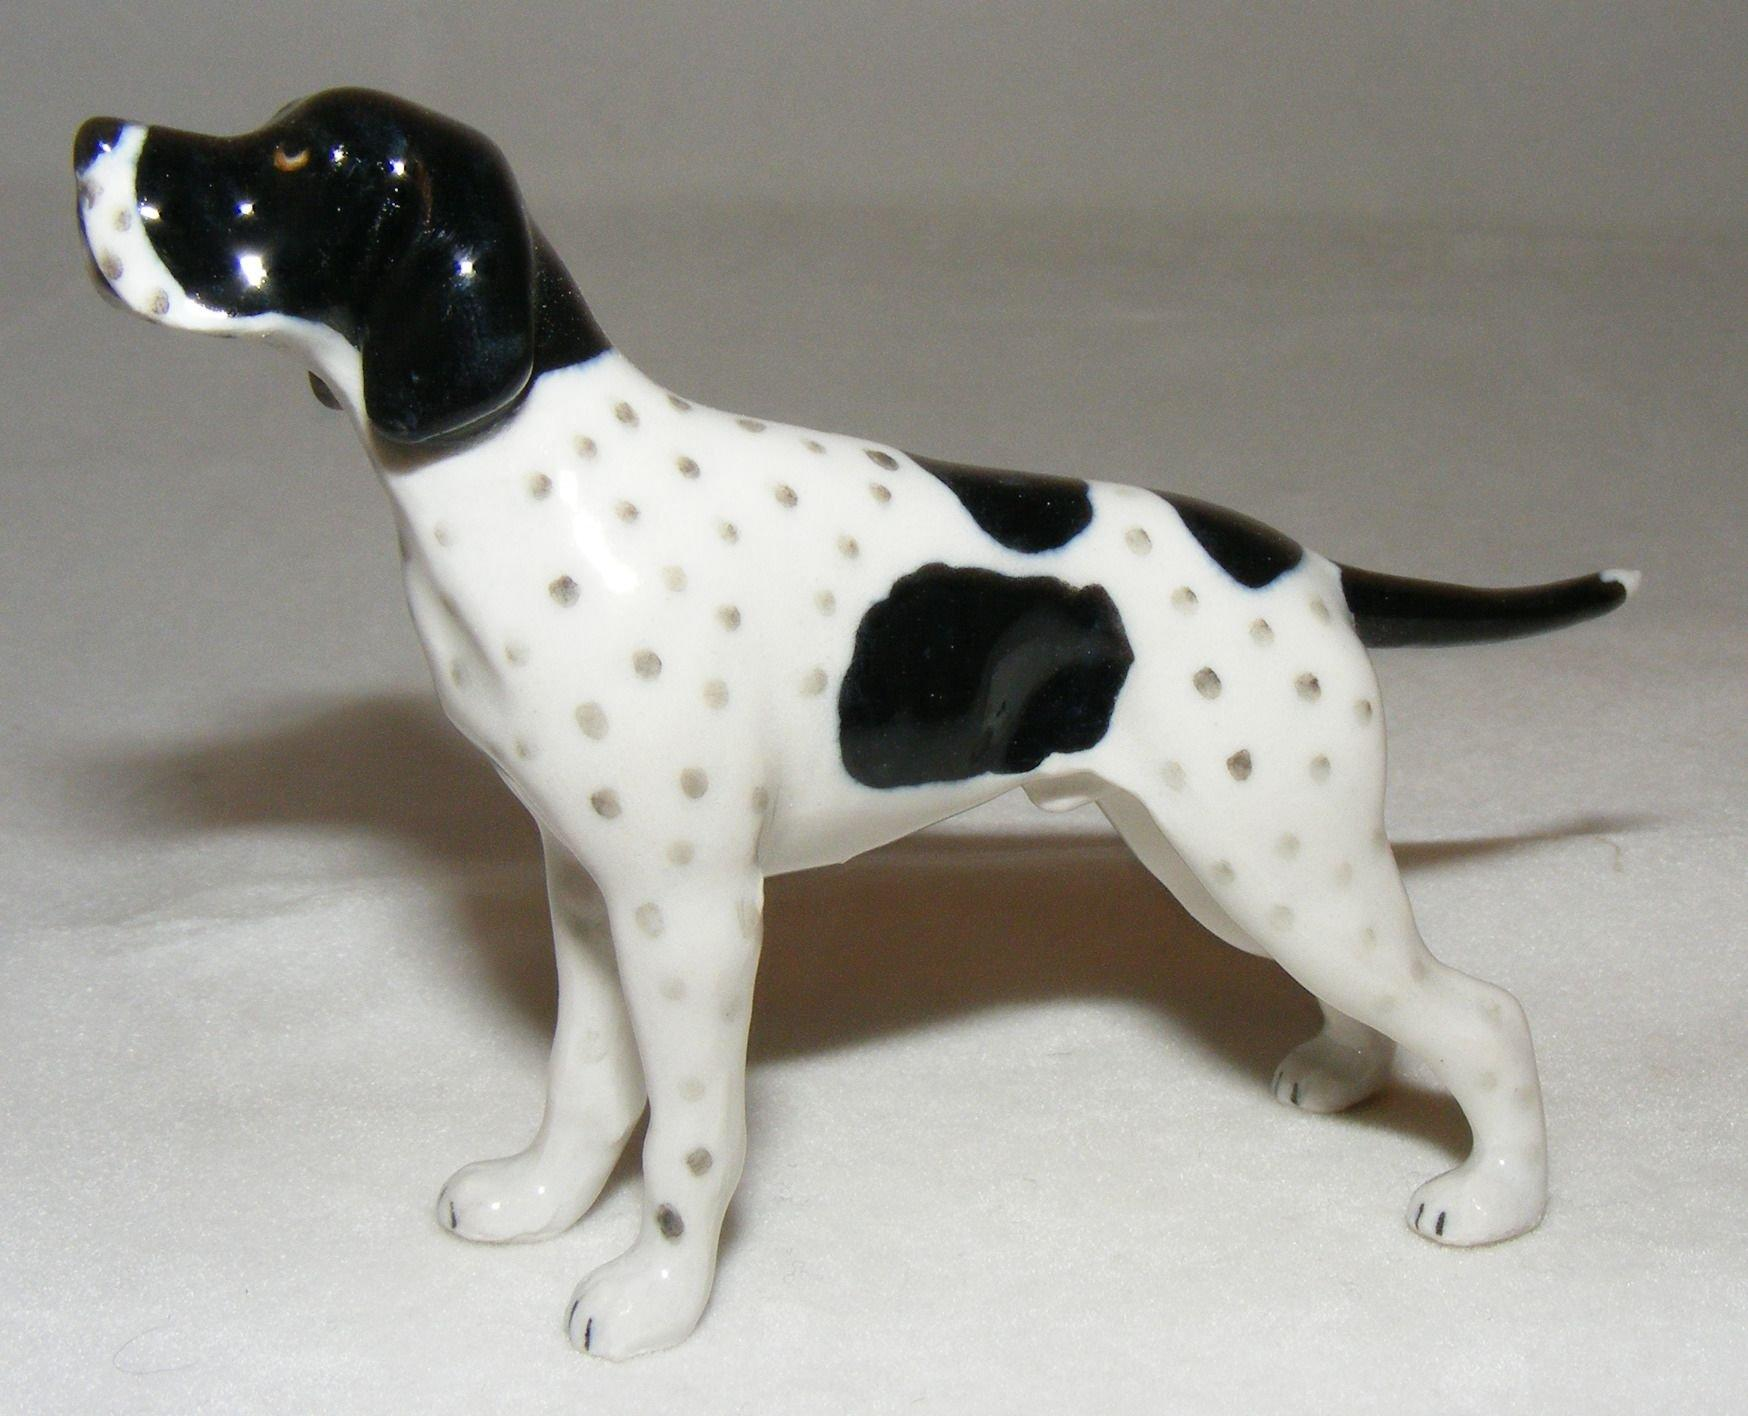 Northern Rose Miniature Porcelain Animal English Pointer